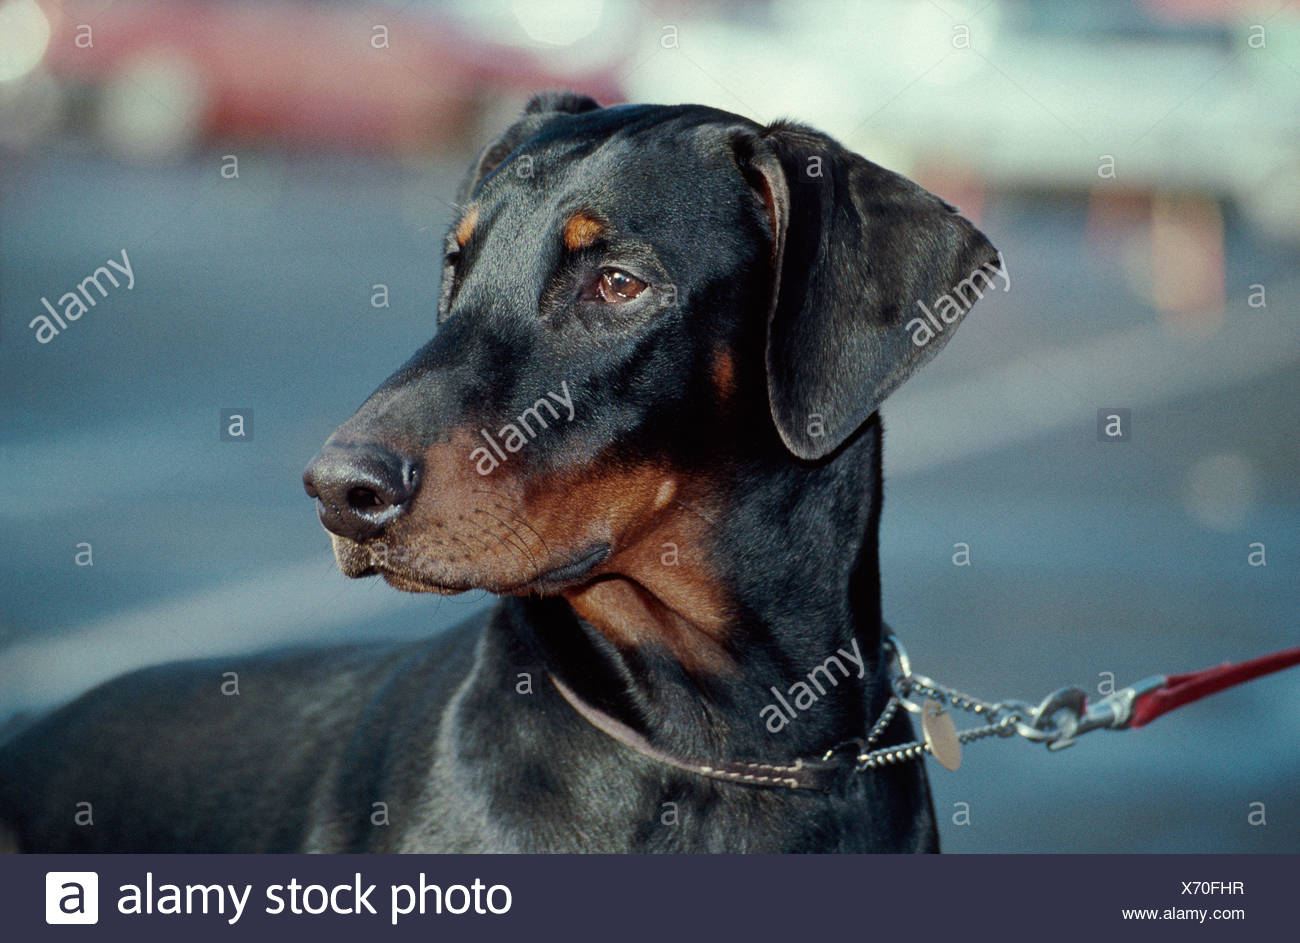 HEADSHOT OF ADULT DOBERMAN PINSCHER / IRELAND - Stock Image